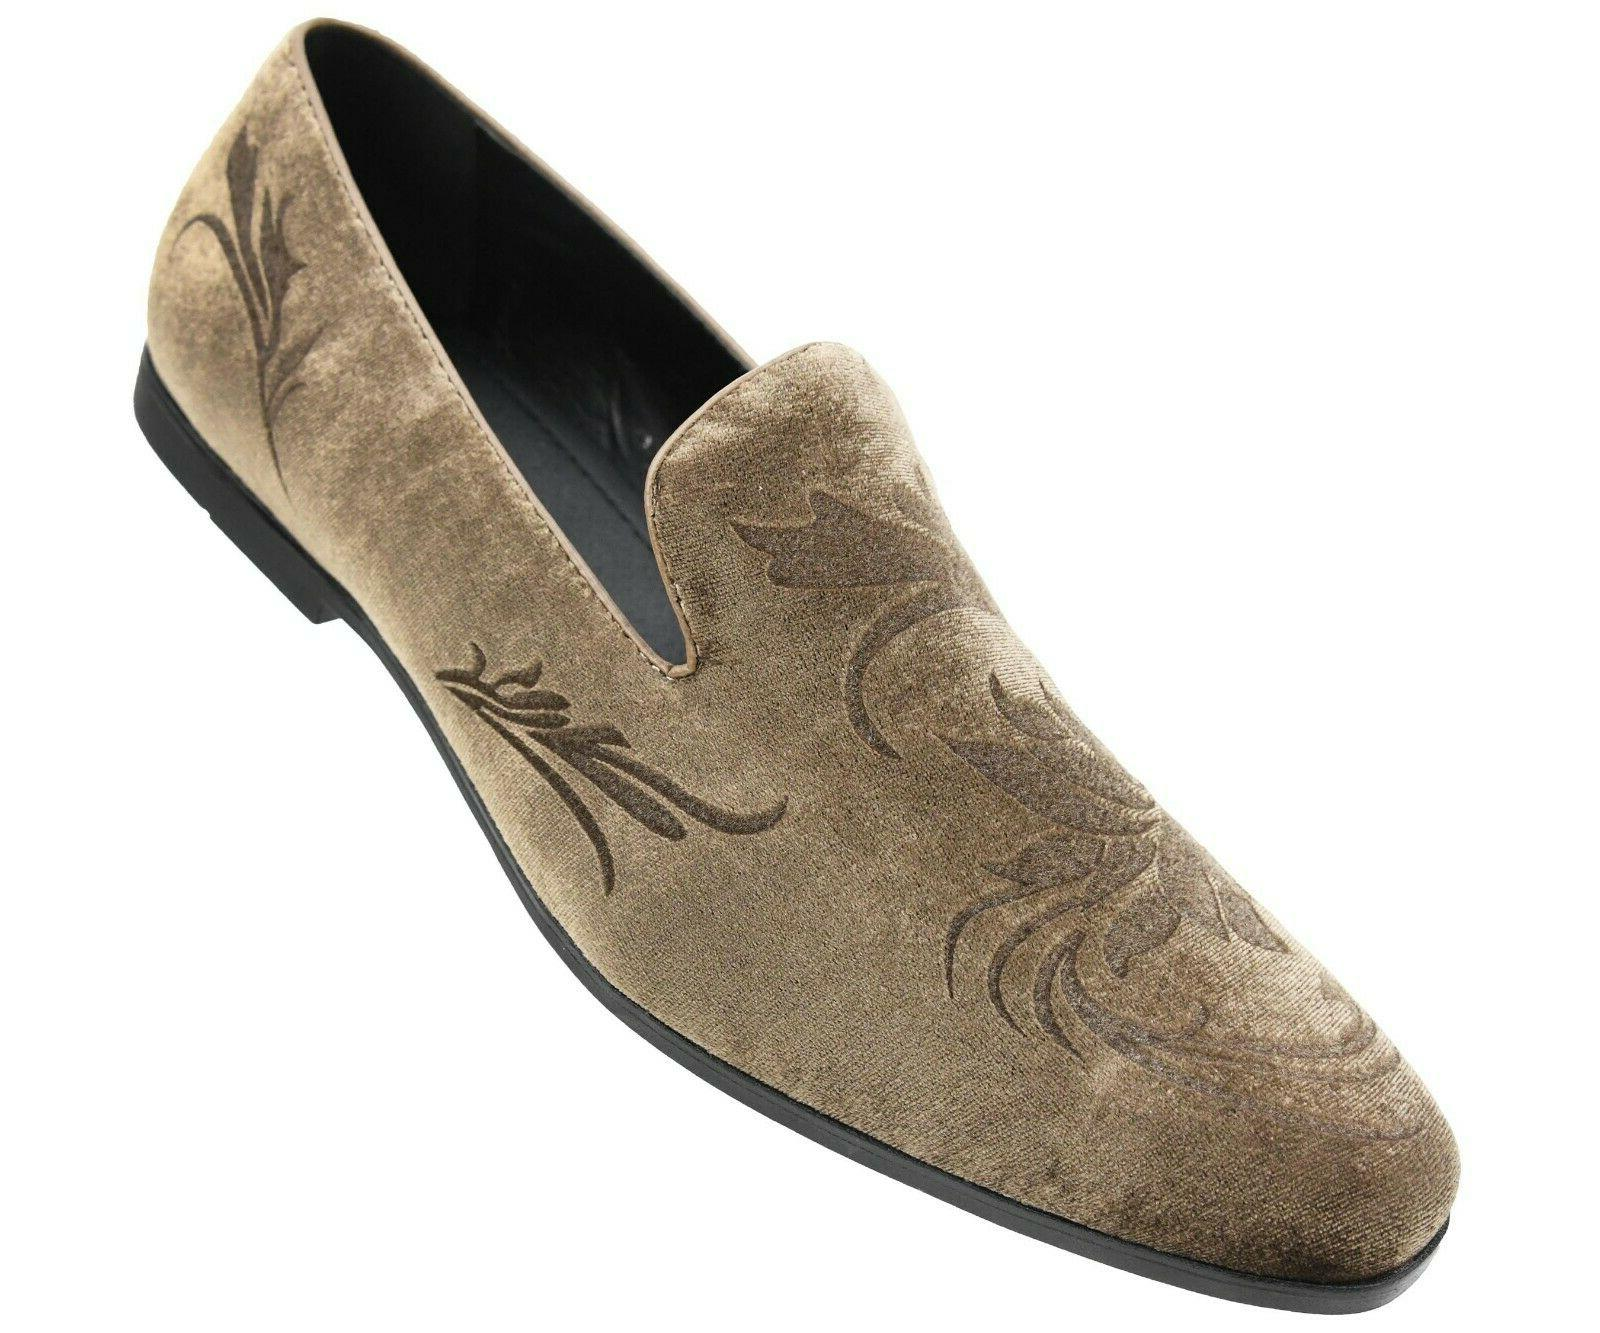 Men's Slippers, Dress Mens Loafers, Mens Slip On Shoes, Desi